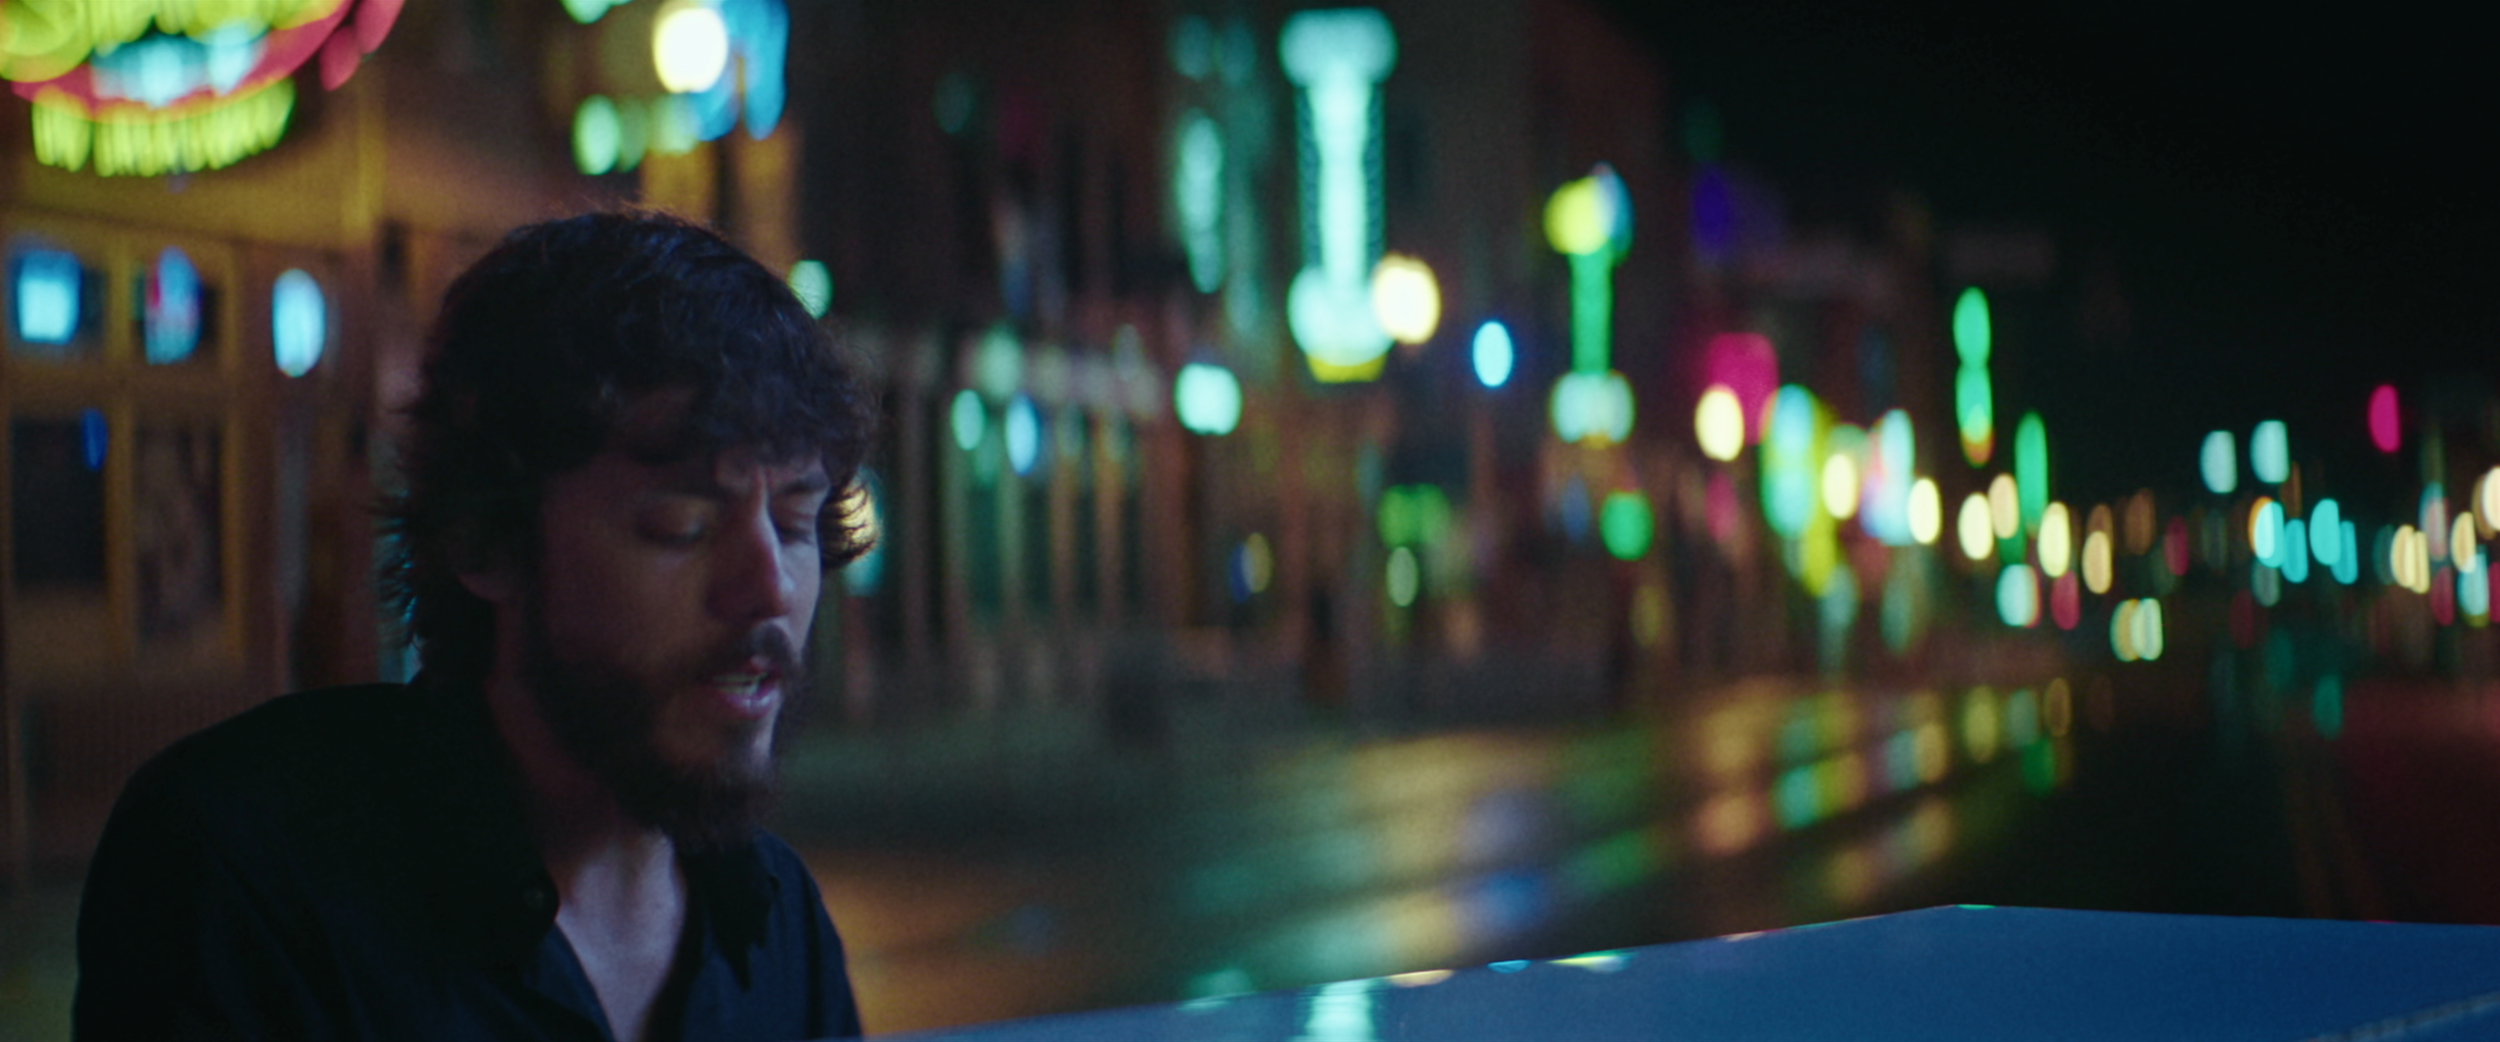 ChrisJanson-DrunkGirl_MASTER-COLOR-01_mov 15.png